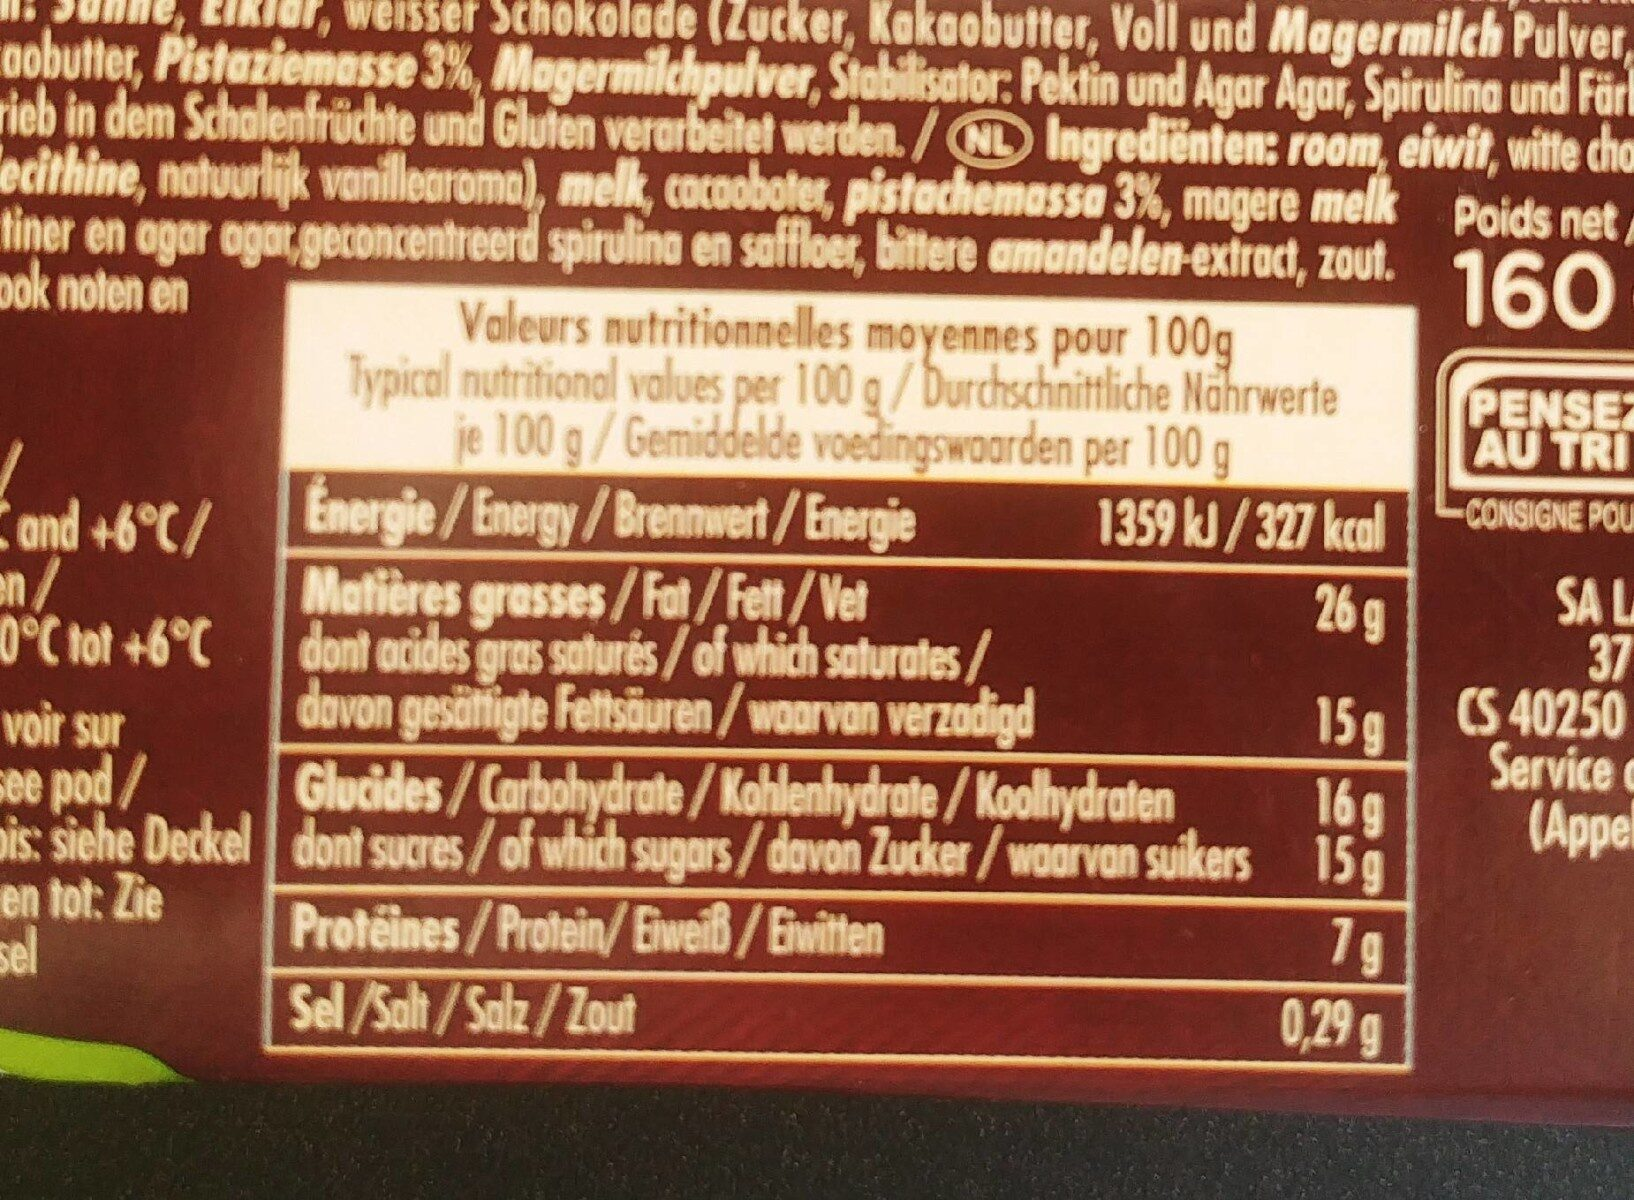 La mousse à la pistache - Nutrition facts